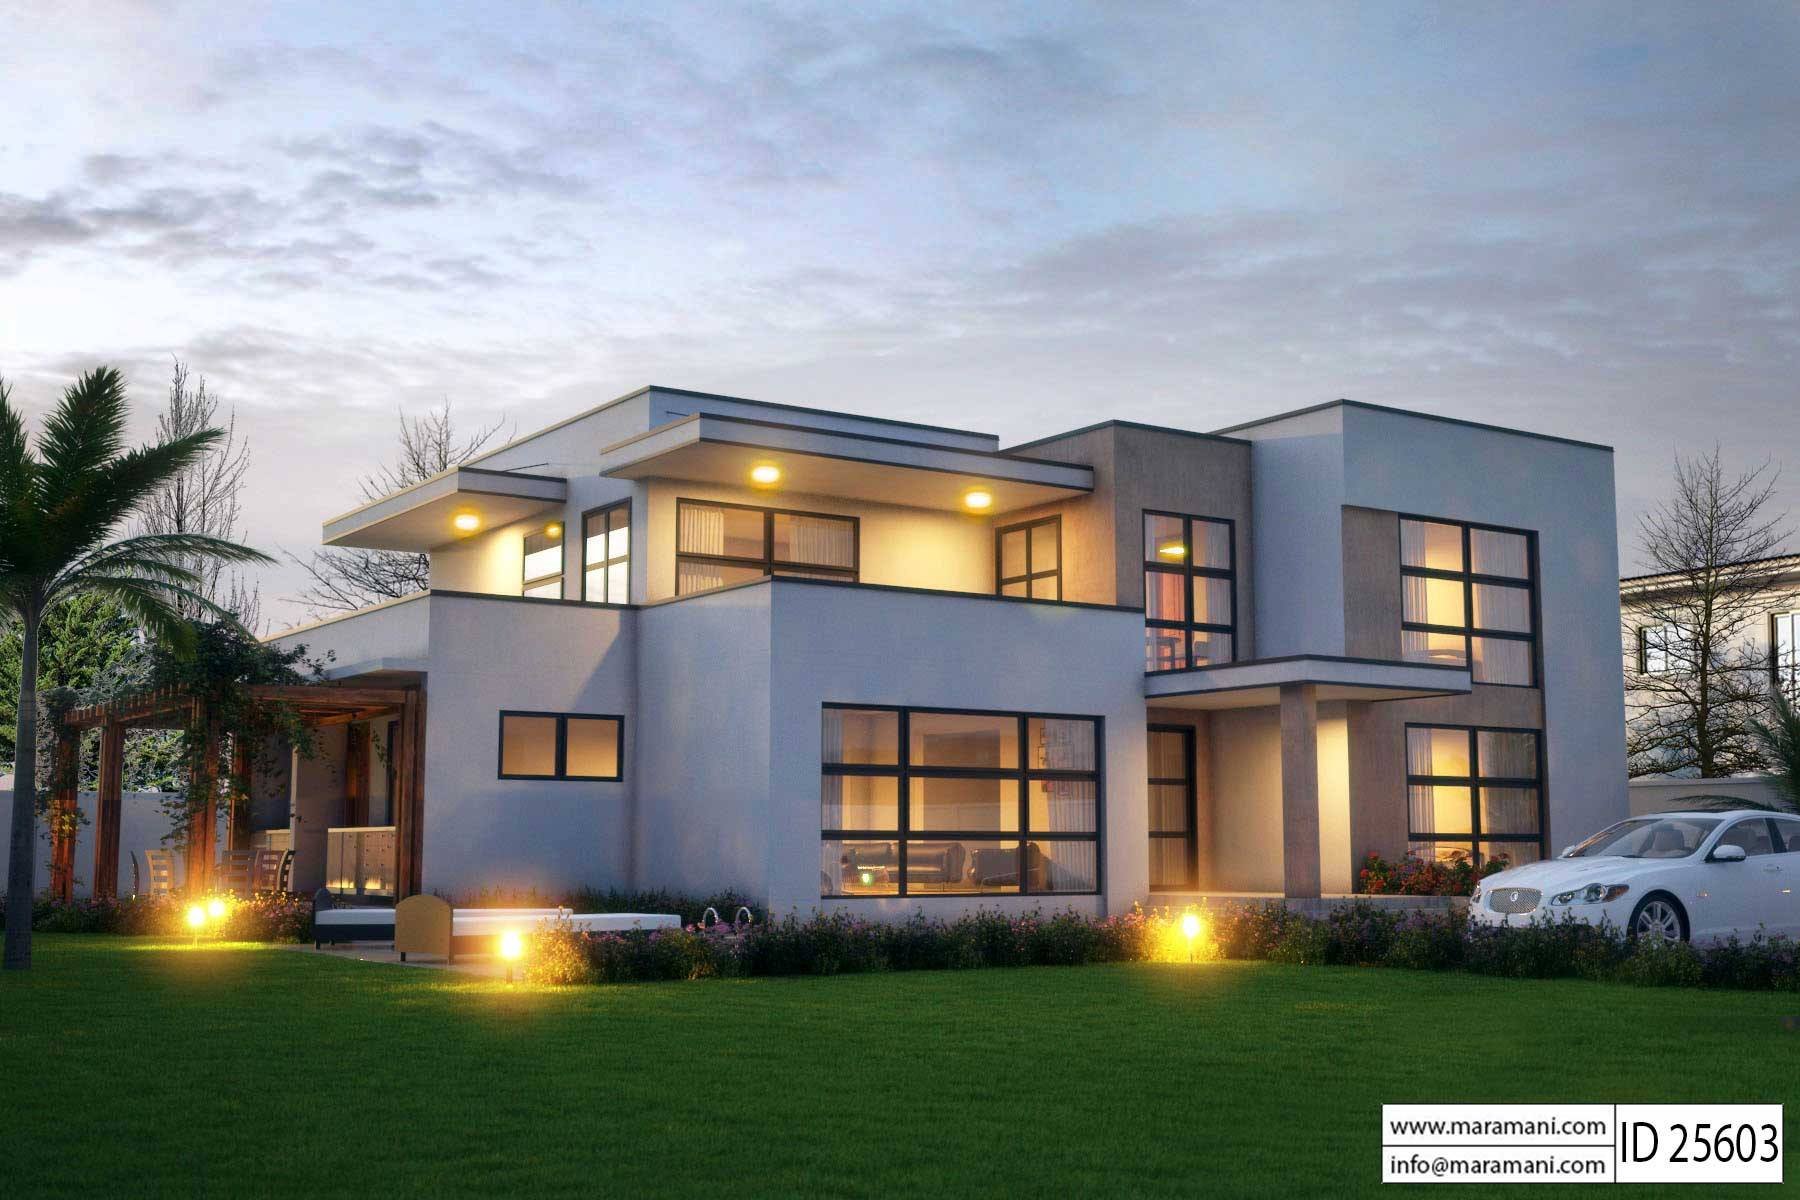 Modern 5 bedroom house design id 25603 floor plans by for 5 bedroom